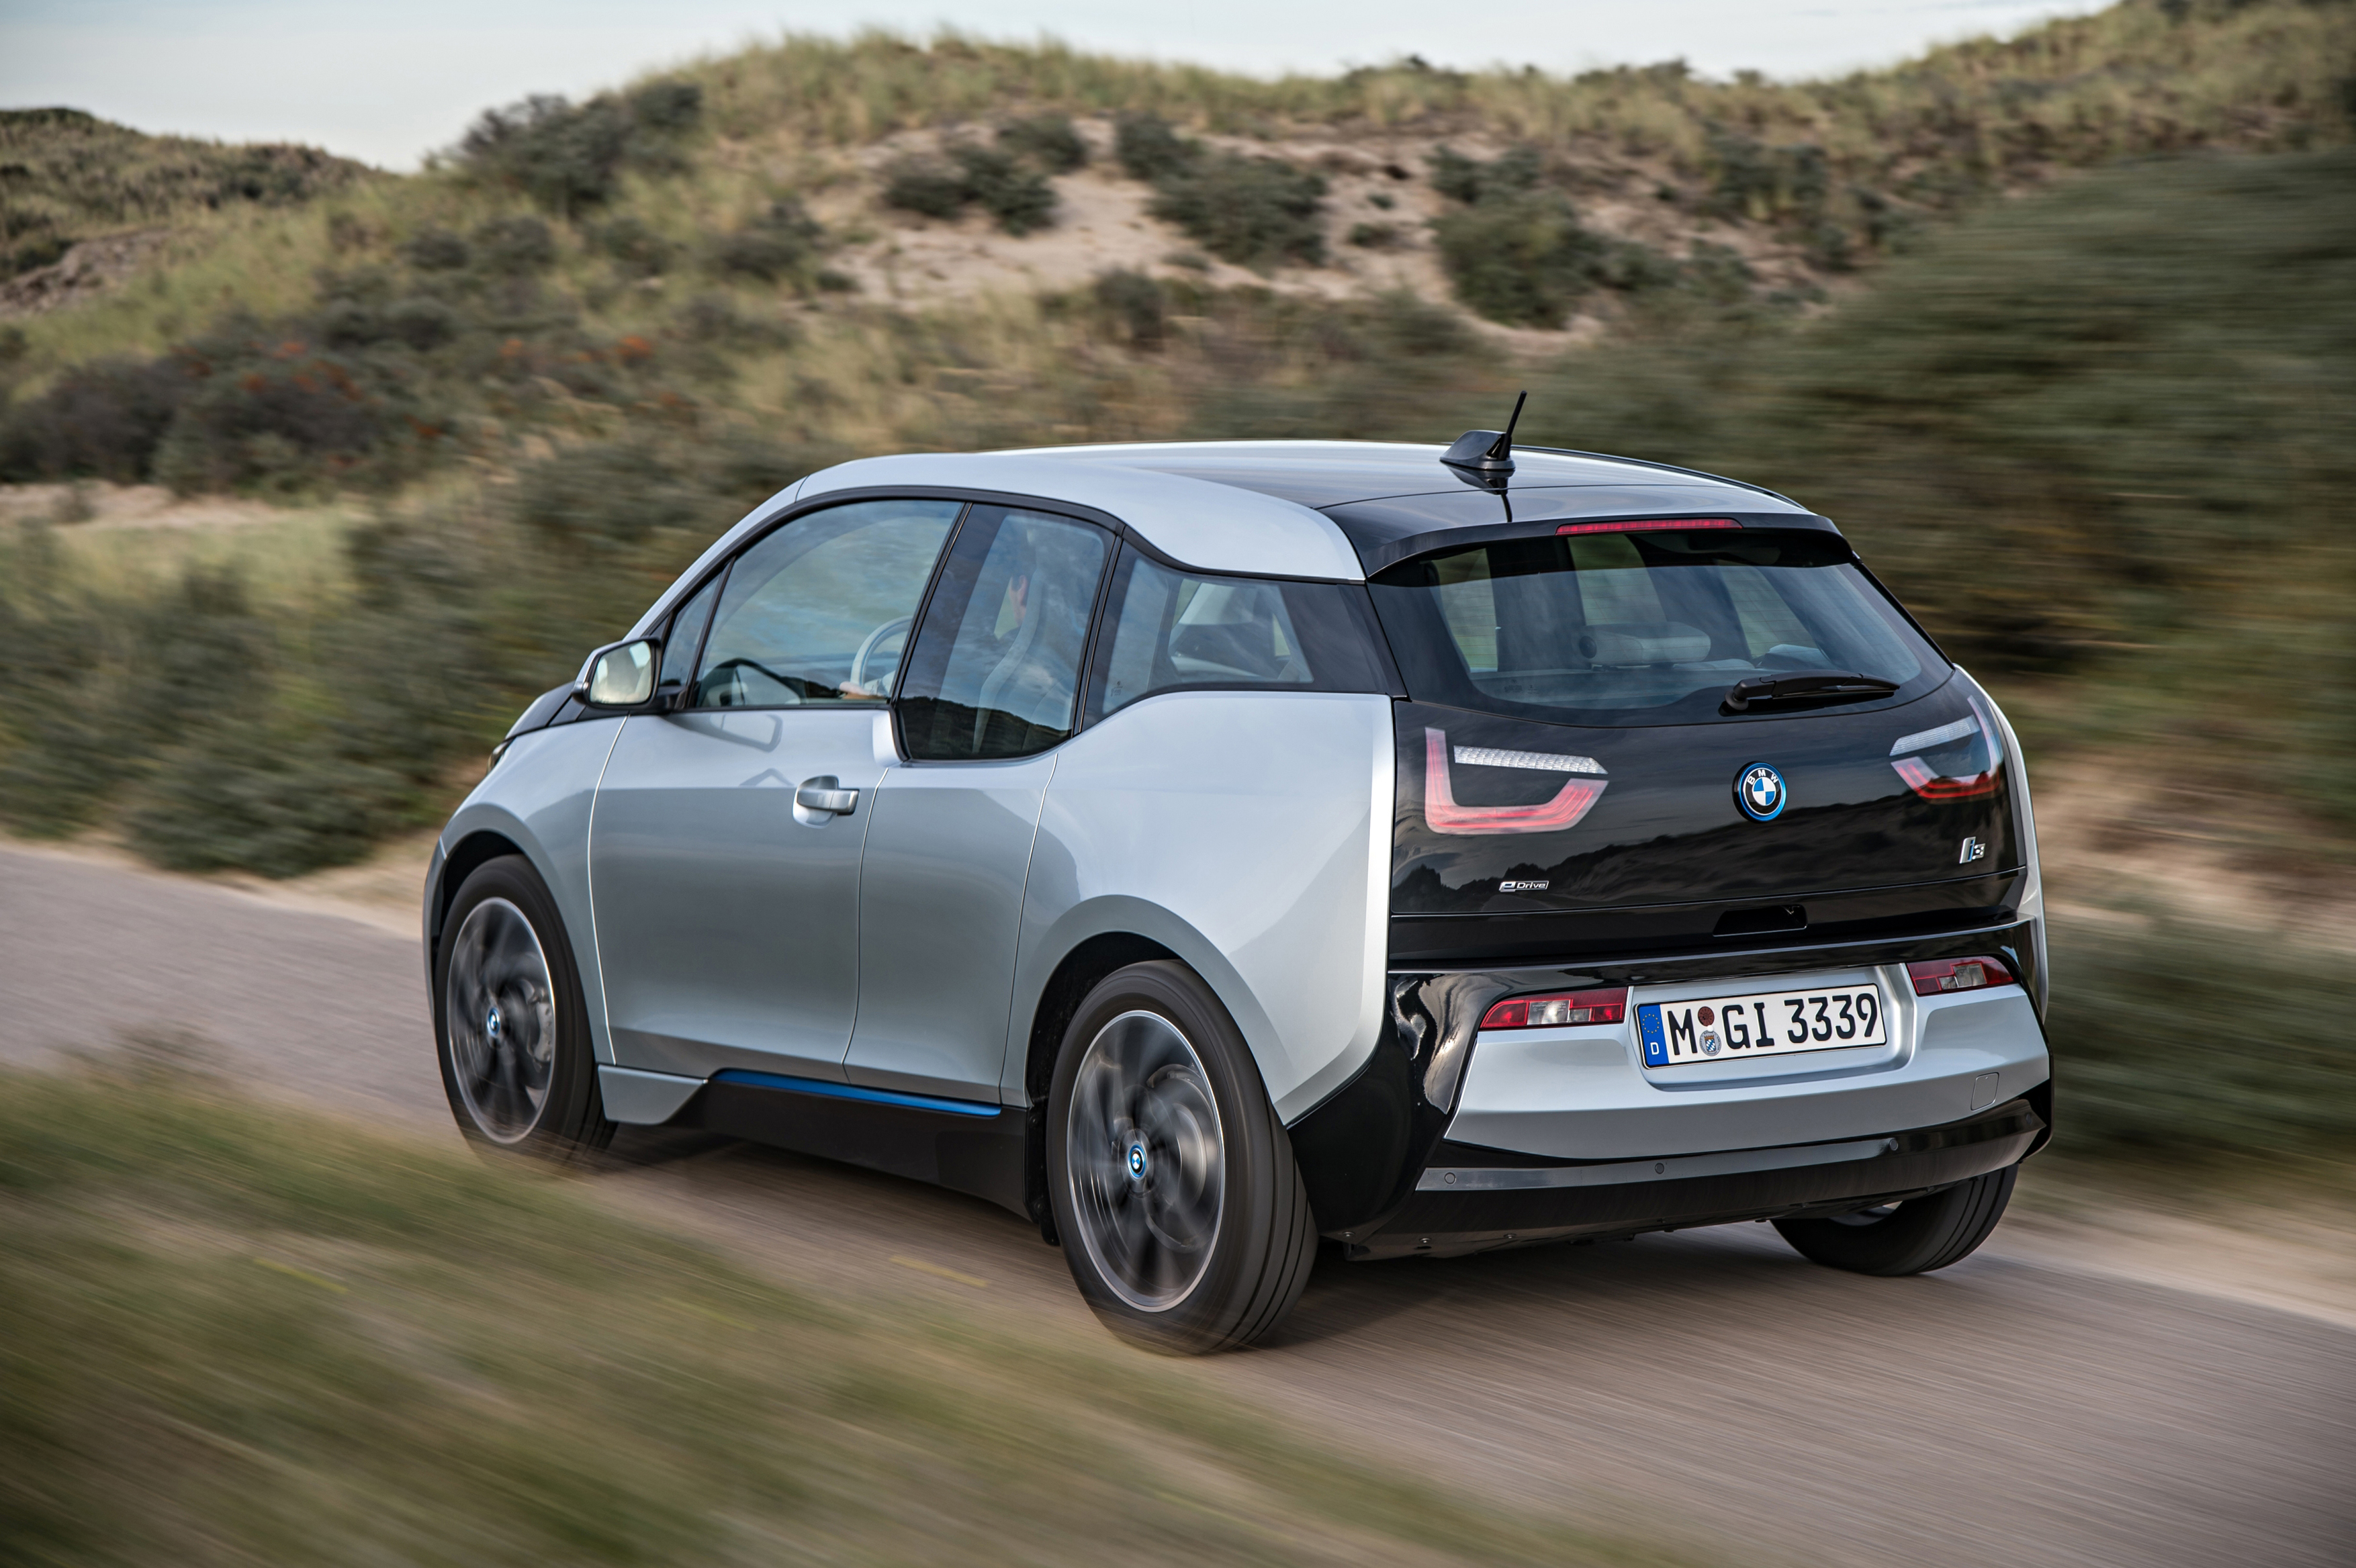 bmw i3 range extender weighs 265lbs won 39 t charge battery. Black Bedroom Furniture Sets. Home Design Ideas